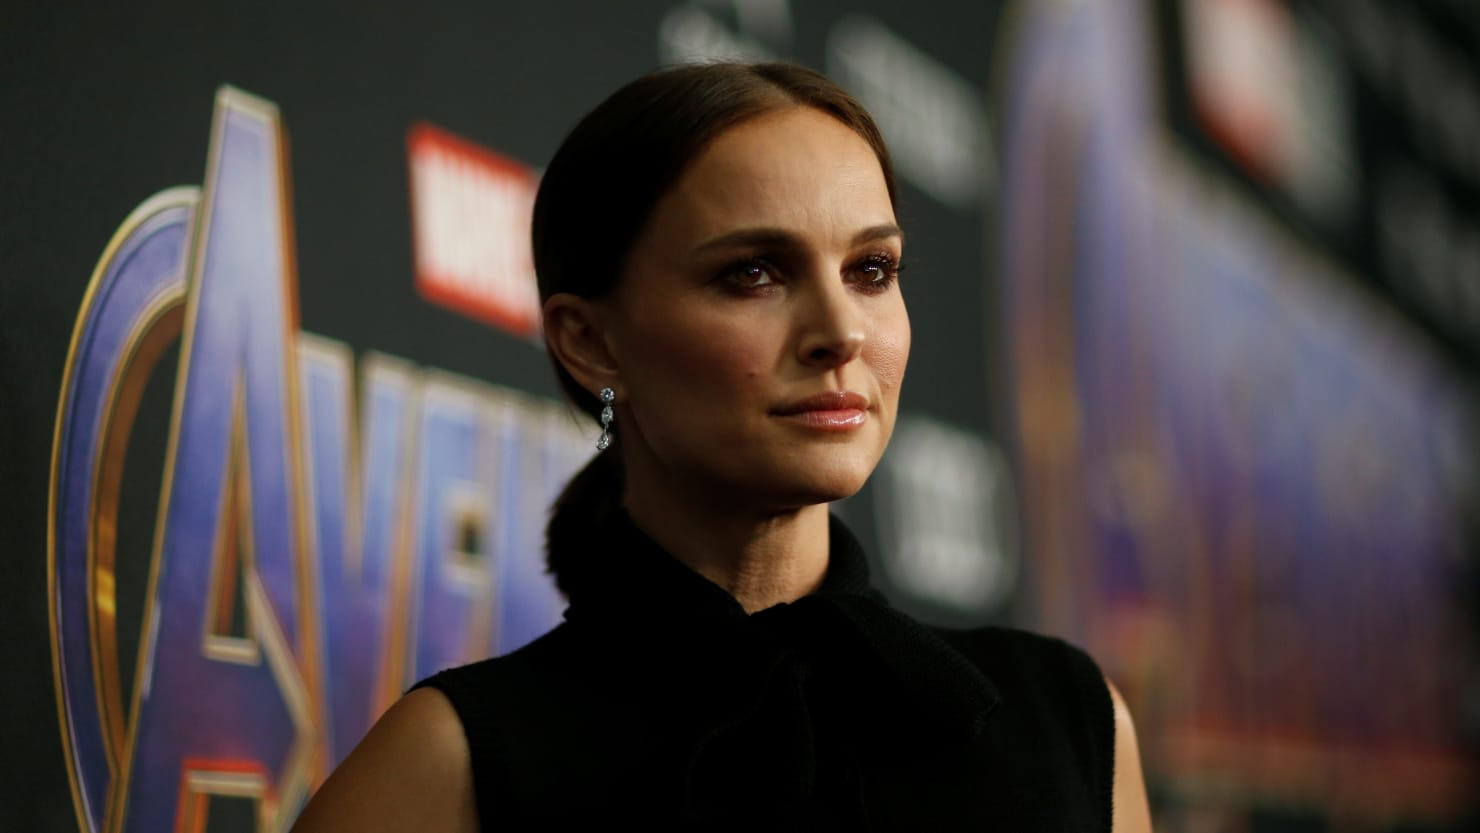 Natalie Portman Denies Dating Moby, Says He Was 'Much Older Man Being Creepy' With Her